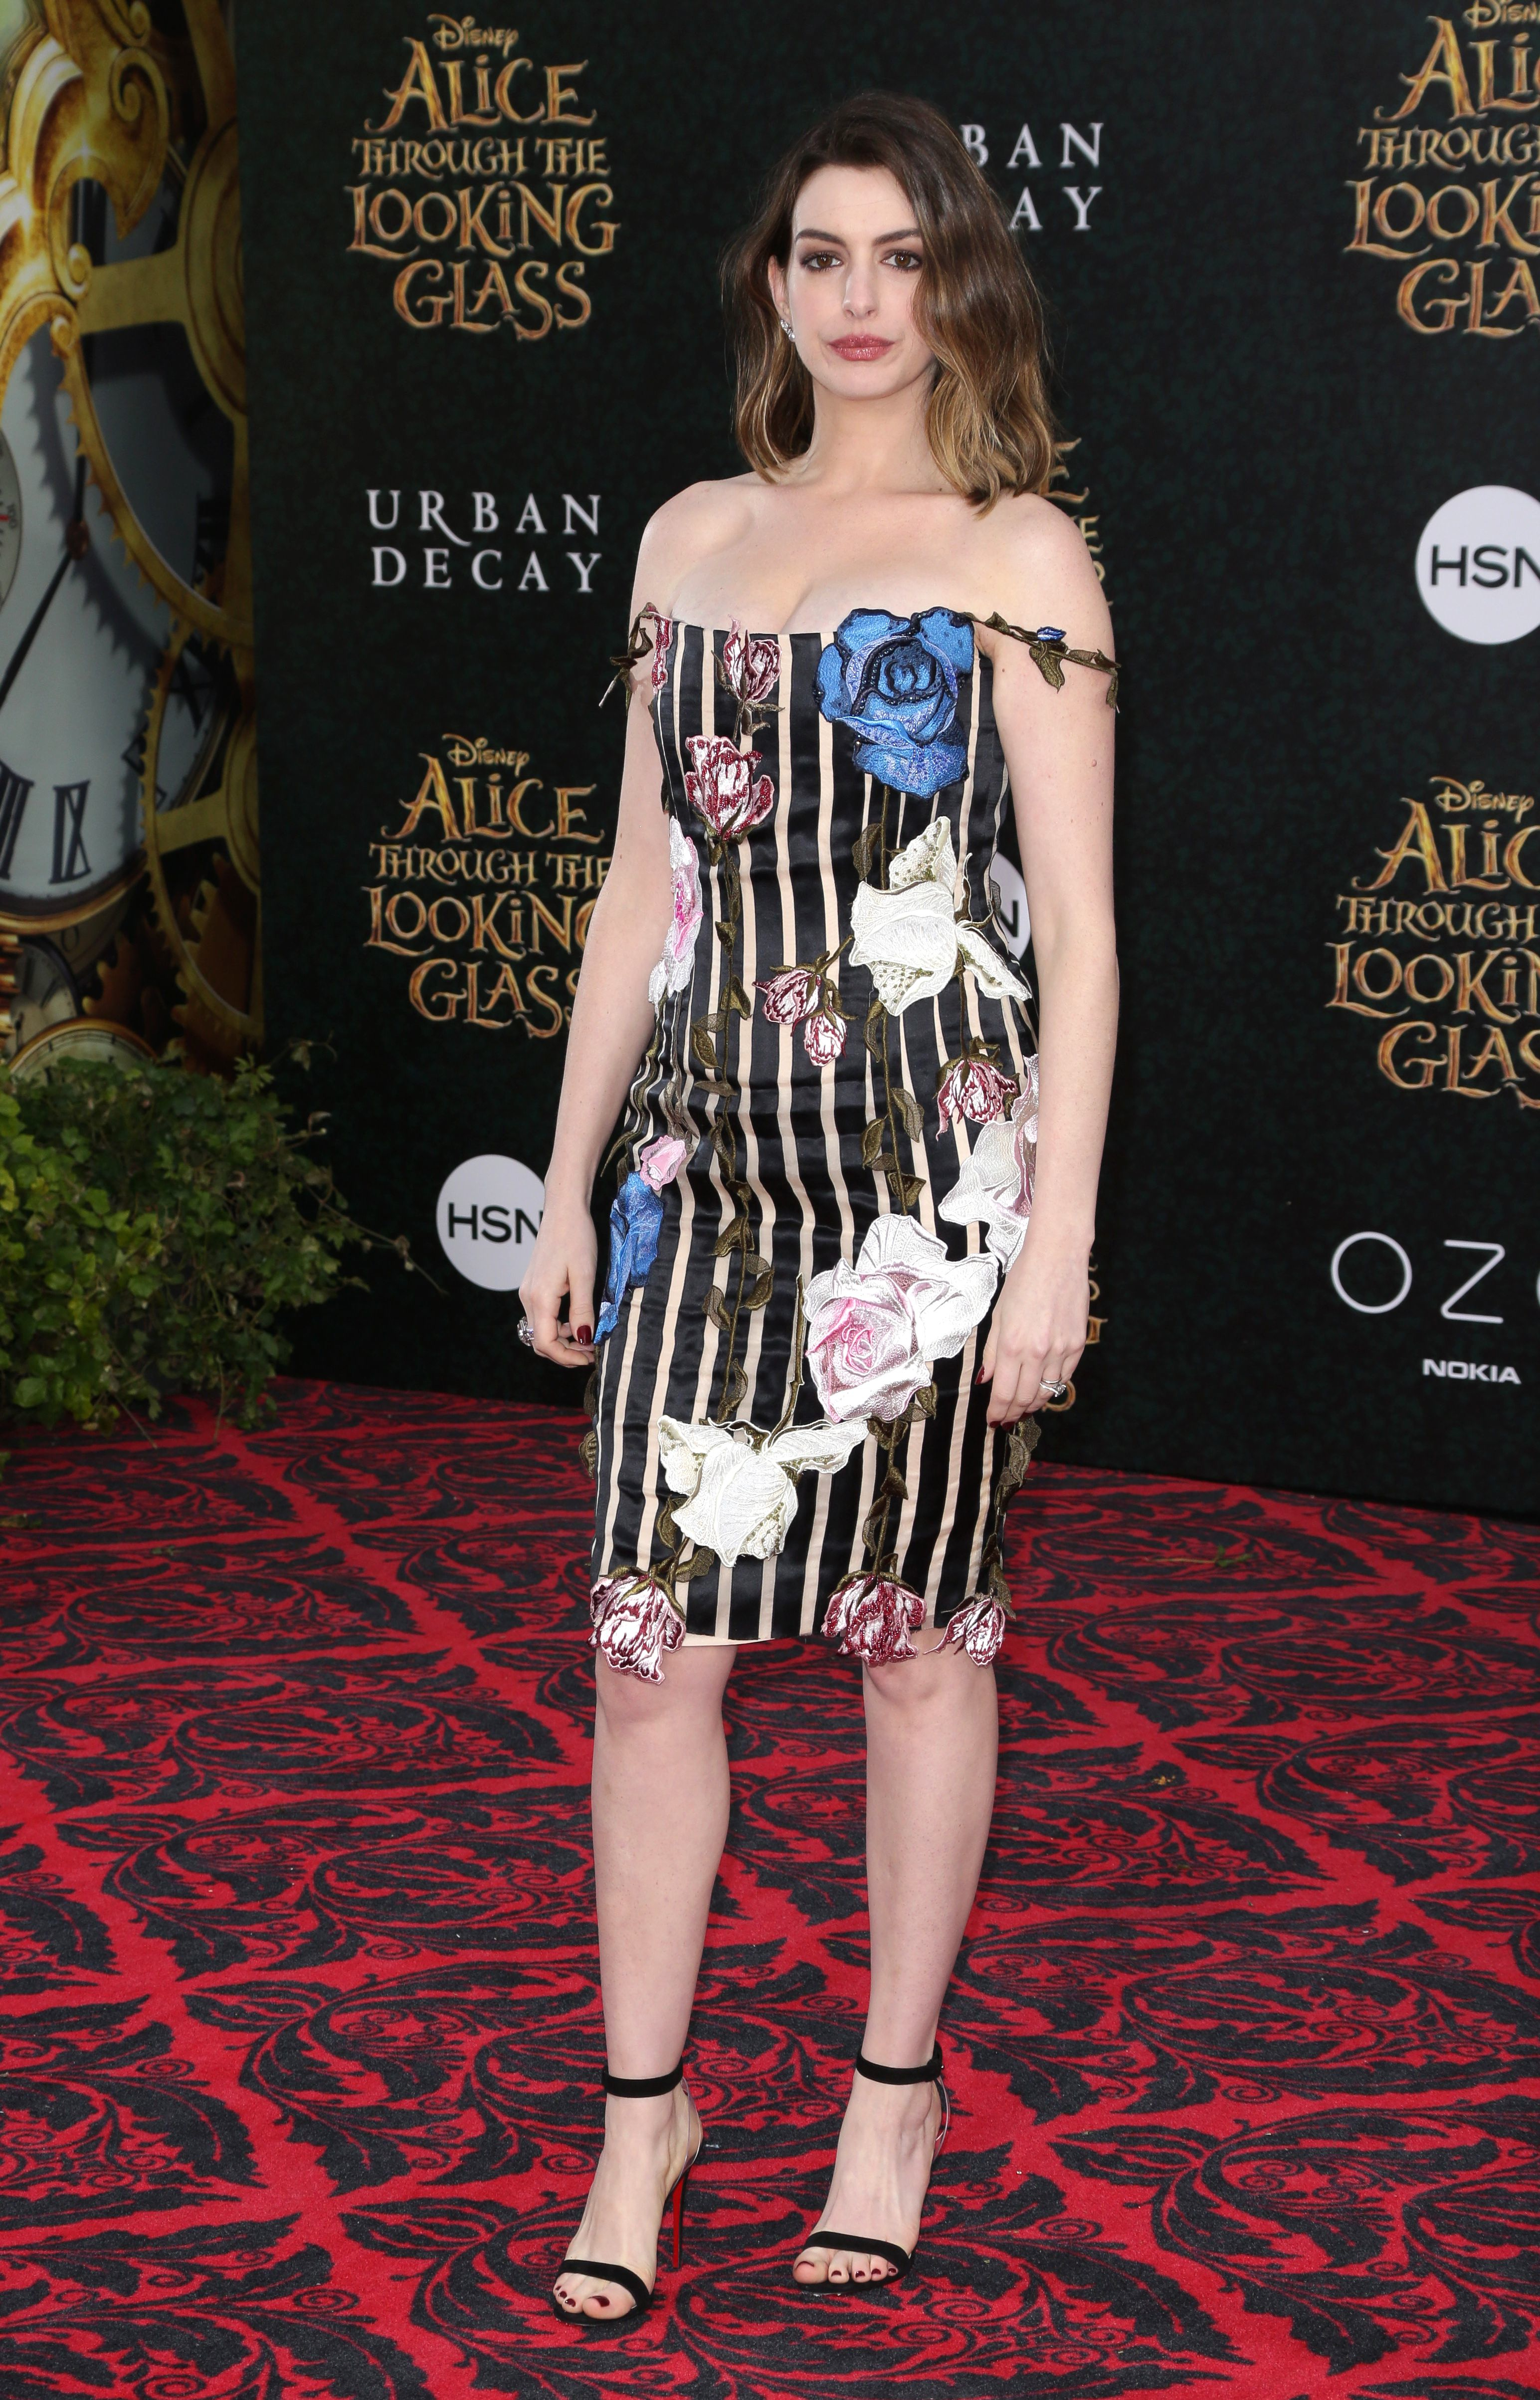 """Anne Hathaway at the """"Alice Through the Looking Glass"""" film premiere in Los Angeles."""